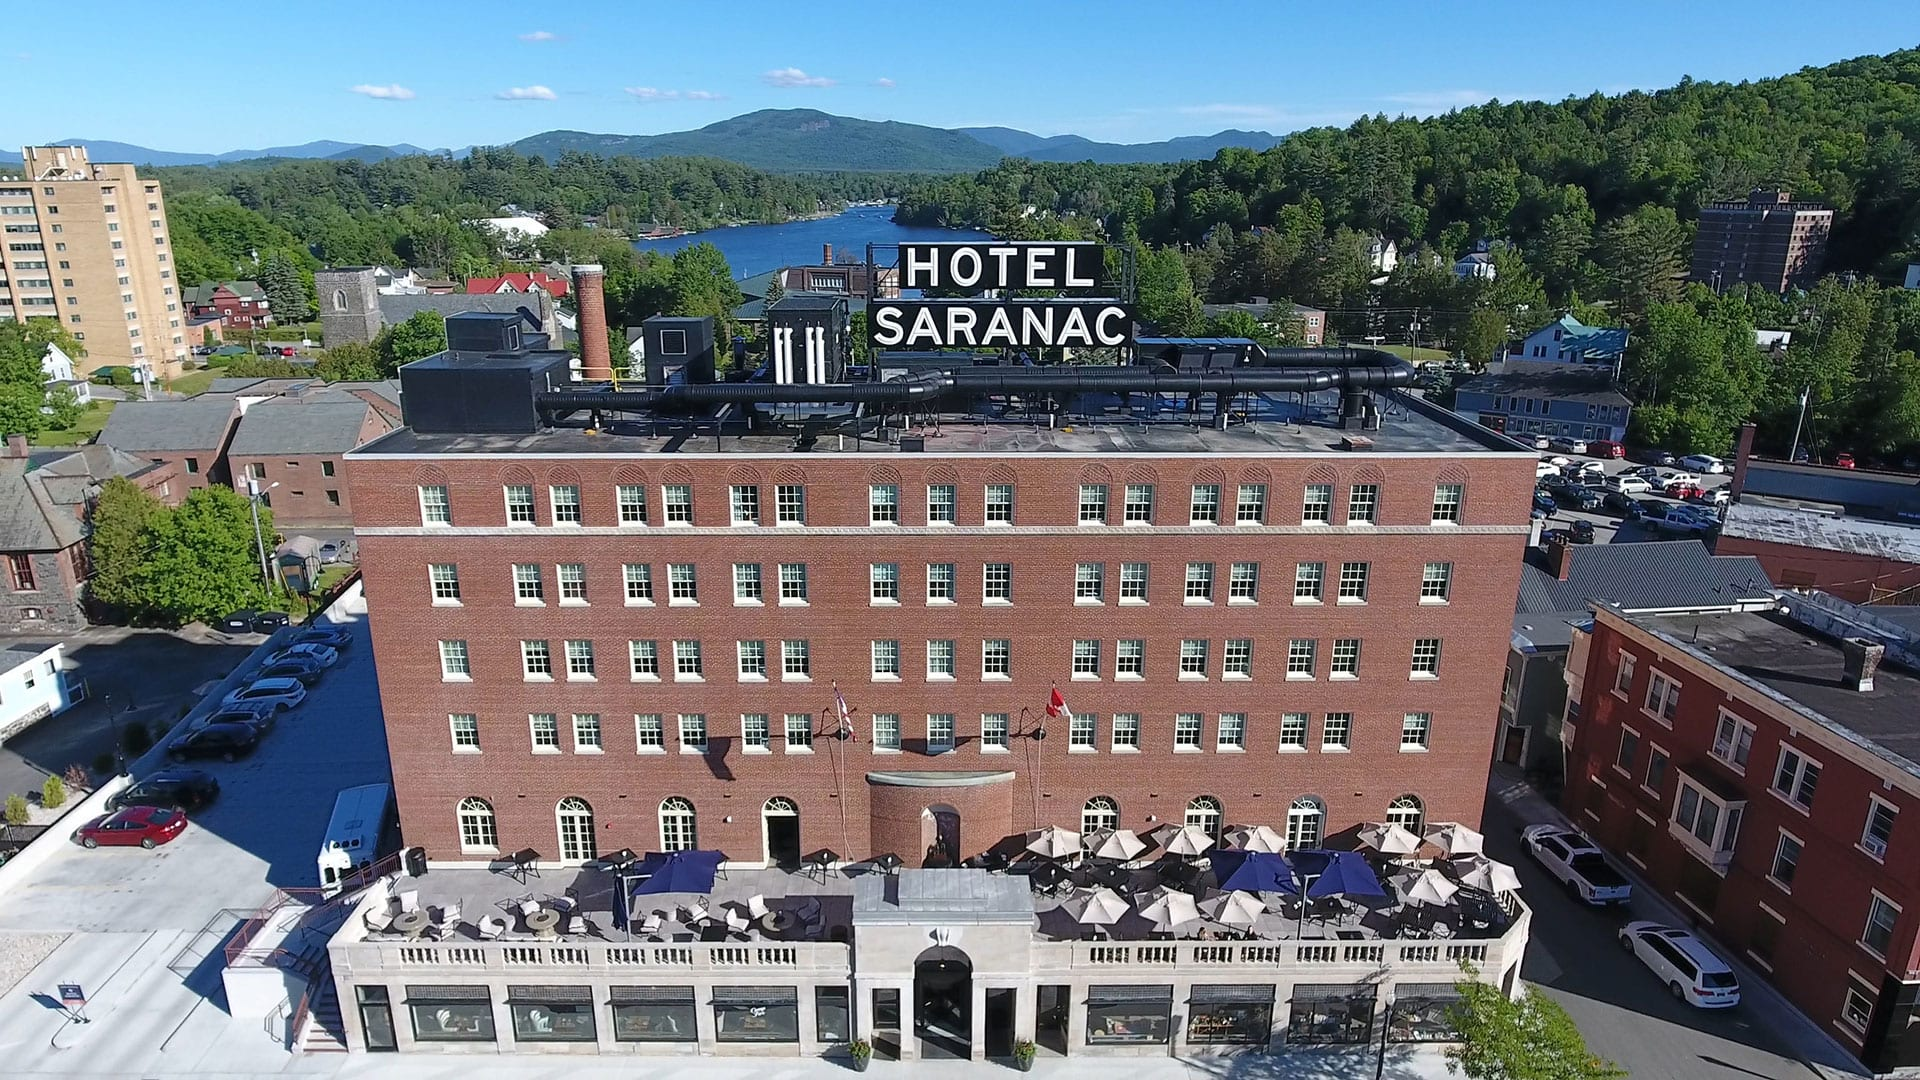 An aerial view of the Hotel Saranac.